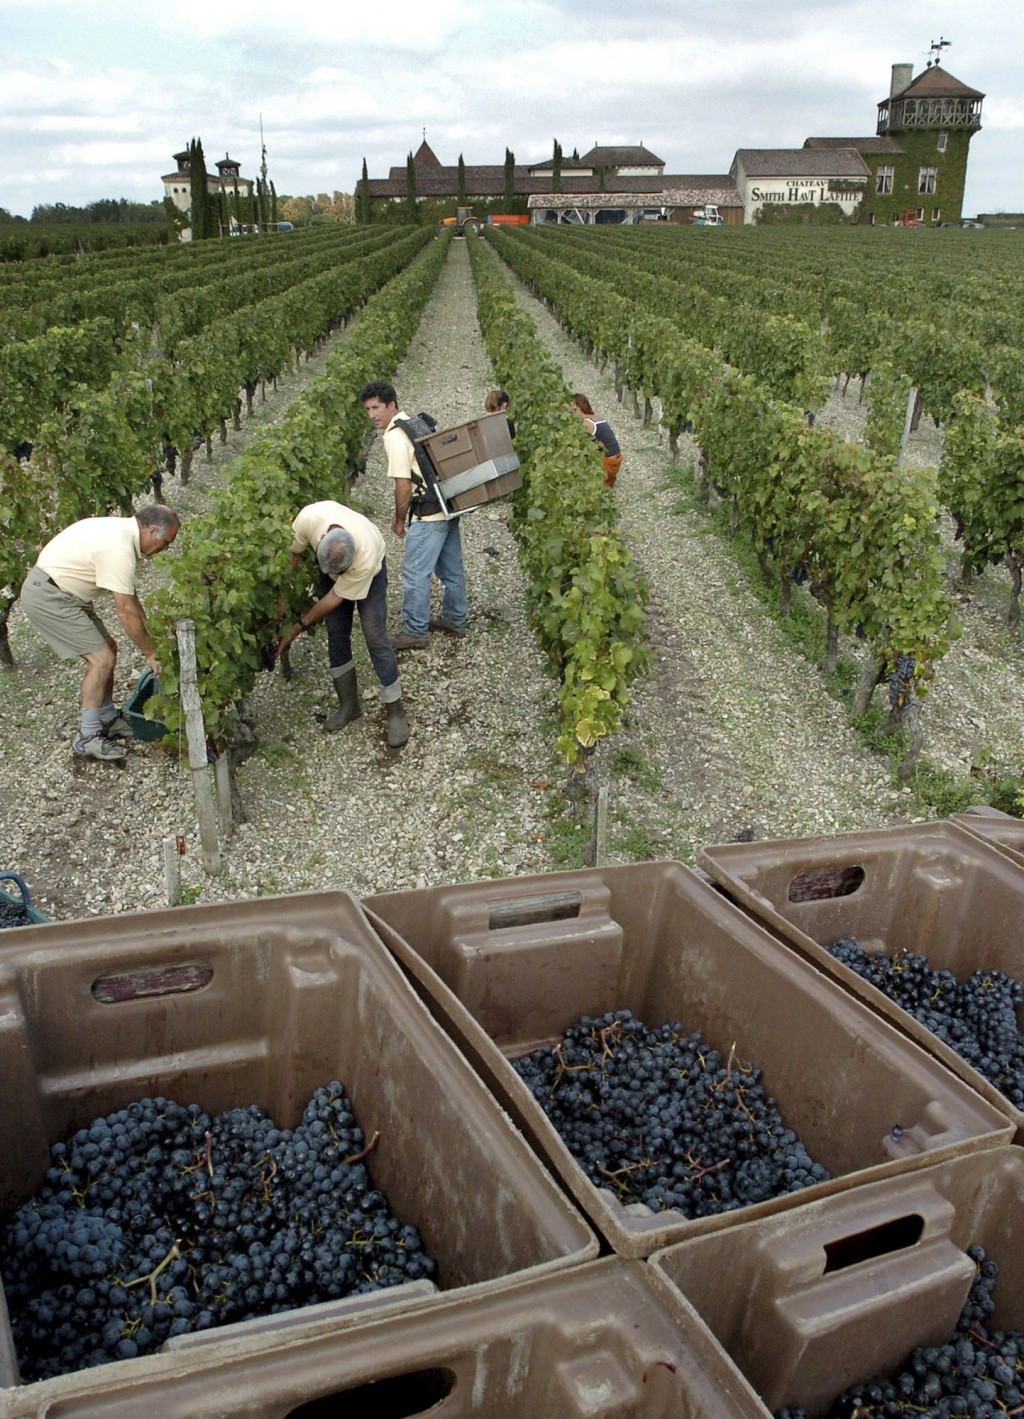 FILE - In this Sept.24, 2004 file photo, grape-pickers harvest grapes at the Chateau Smith Haut Lafitte, near Bordeaux, southwestern France, in the Gr